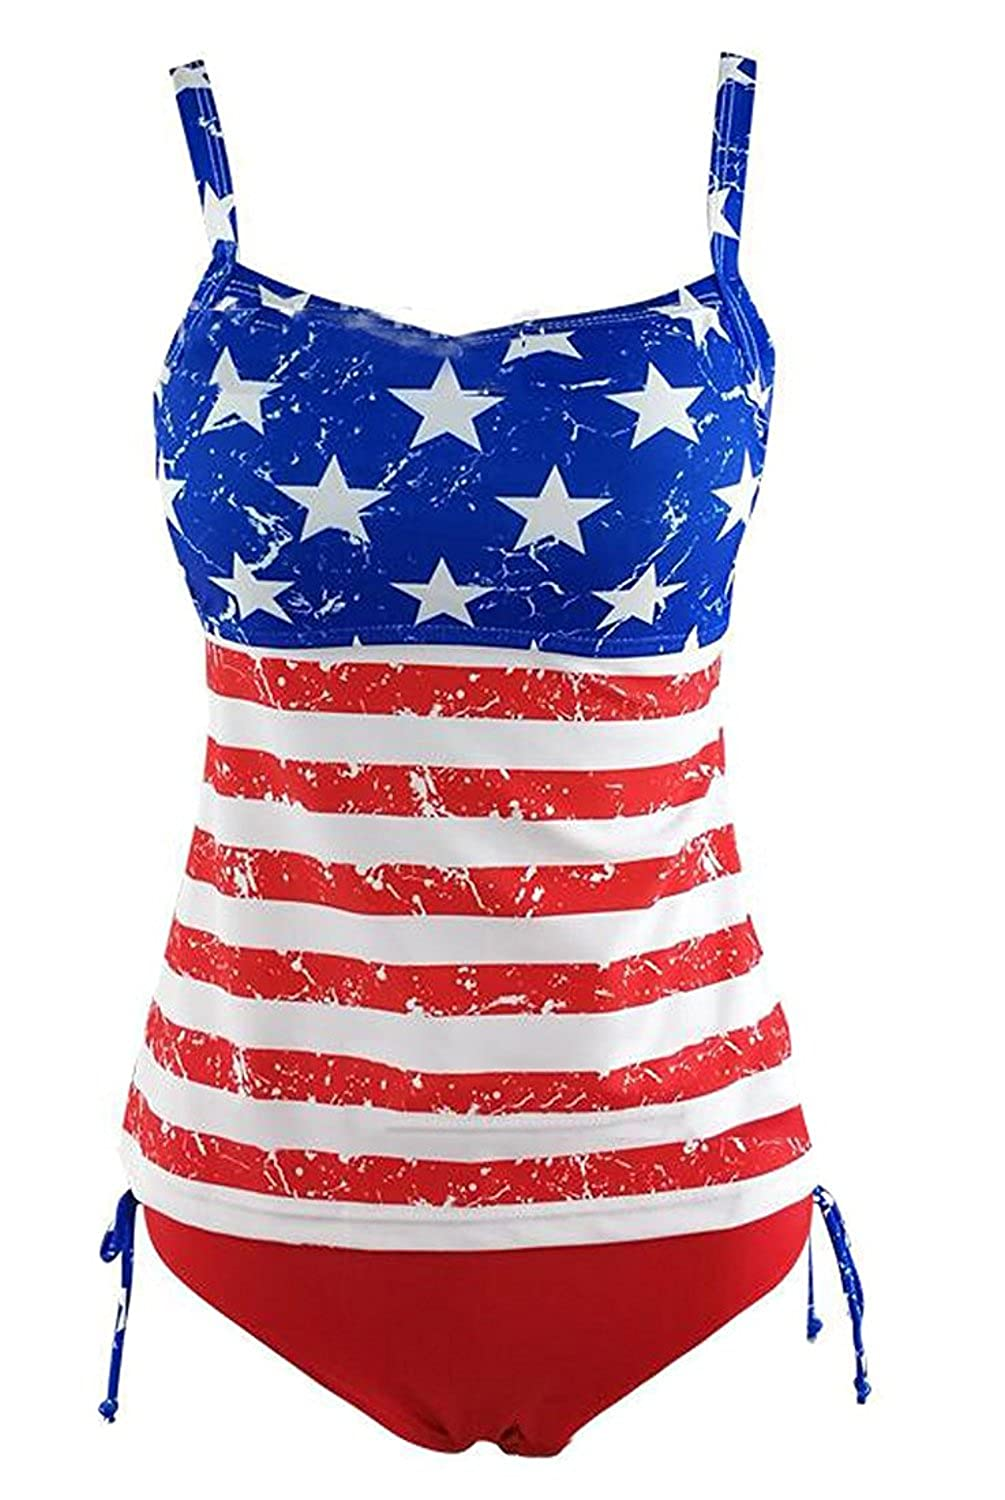 5860d5f509364 Striped Push Up Bikini Set, Halter Style Top, American Flag Two Piece  Bathing Suit. Summer Beach Sexy Patriotic Womens Swimsuit American Flag  Printed ...